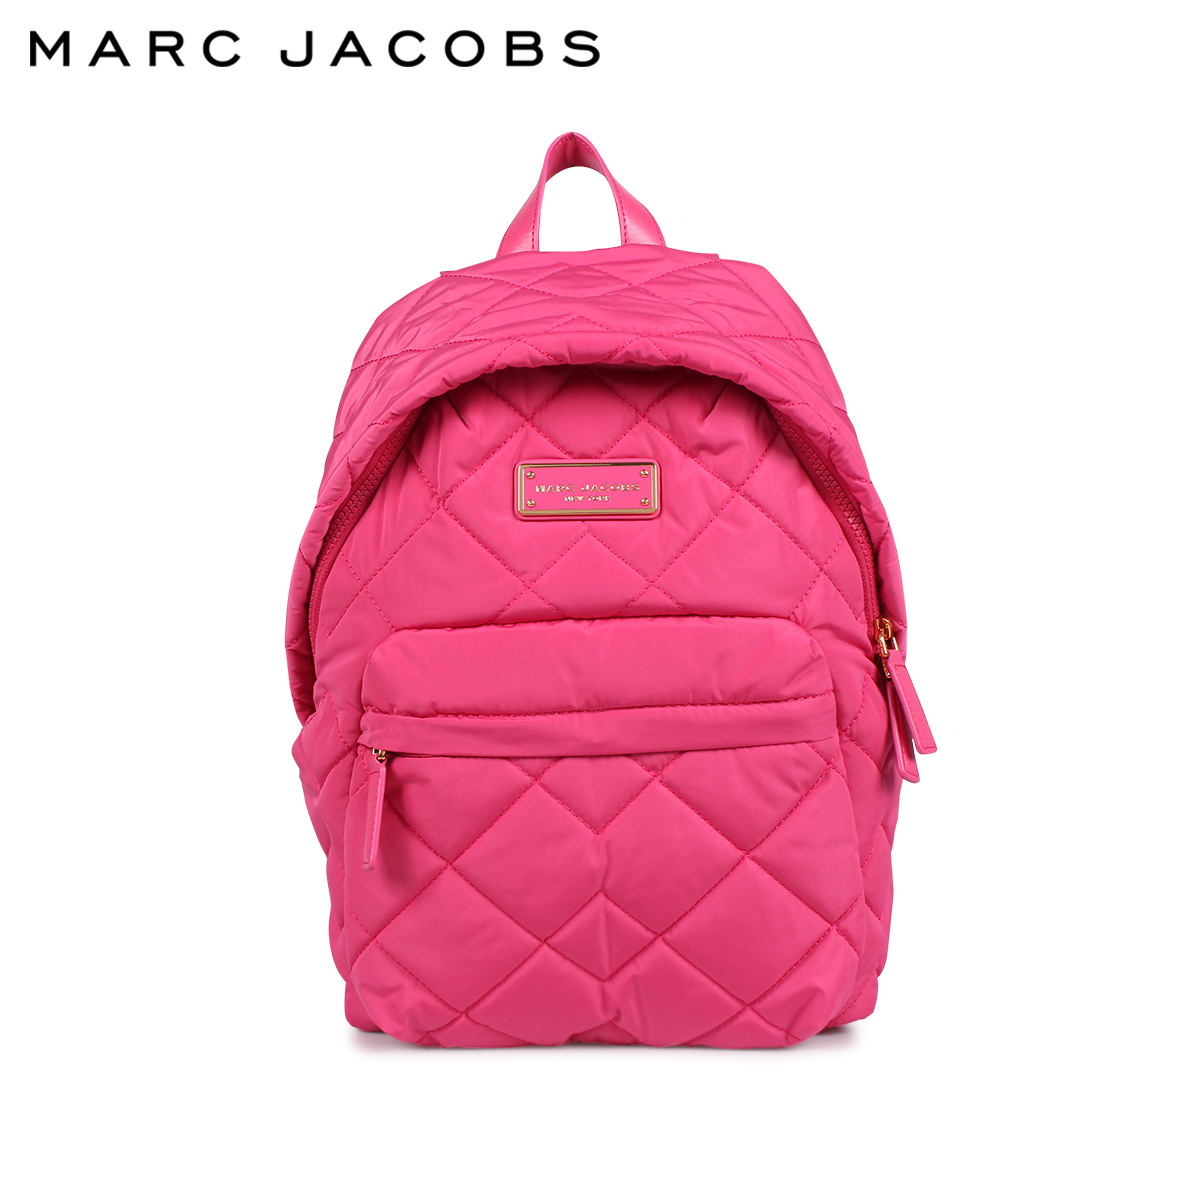 MARC JACOBS マークジェイコブス リュック バッグ バックパック レディース QUILTED BACKPACK ピンク M0011321